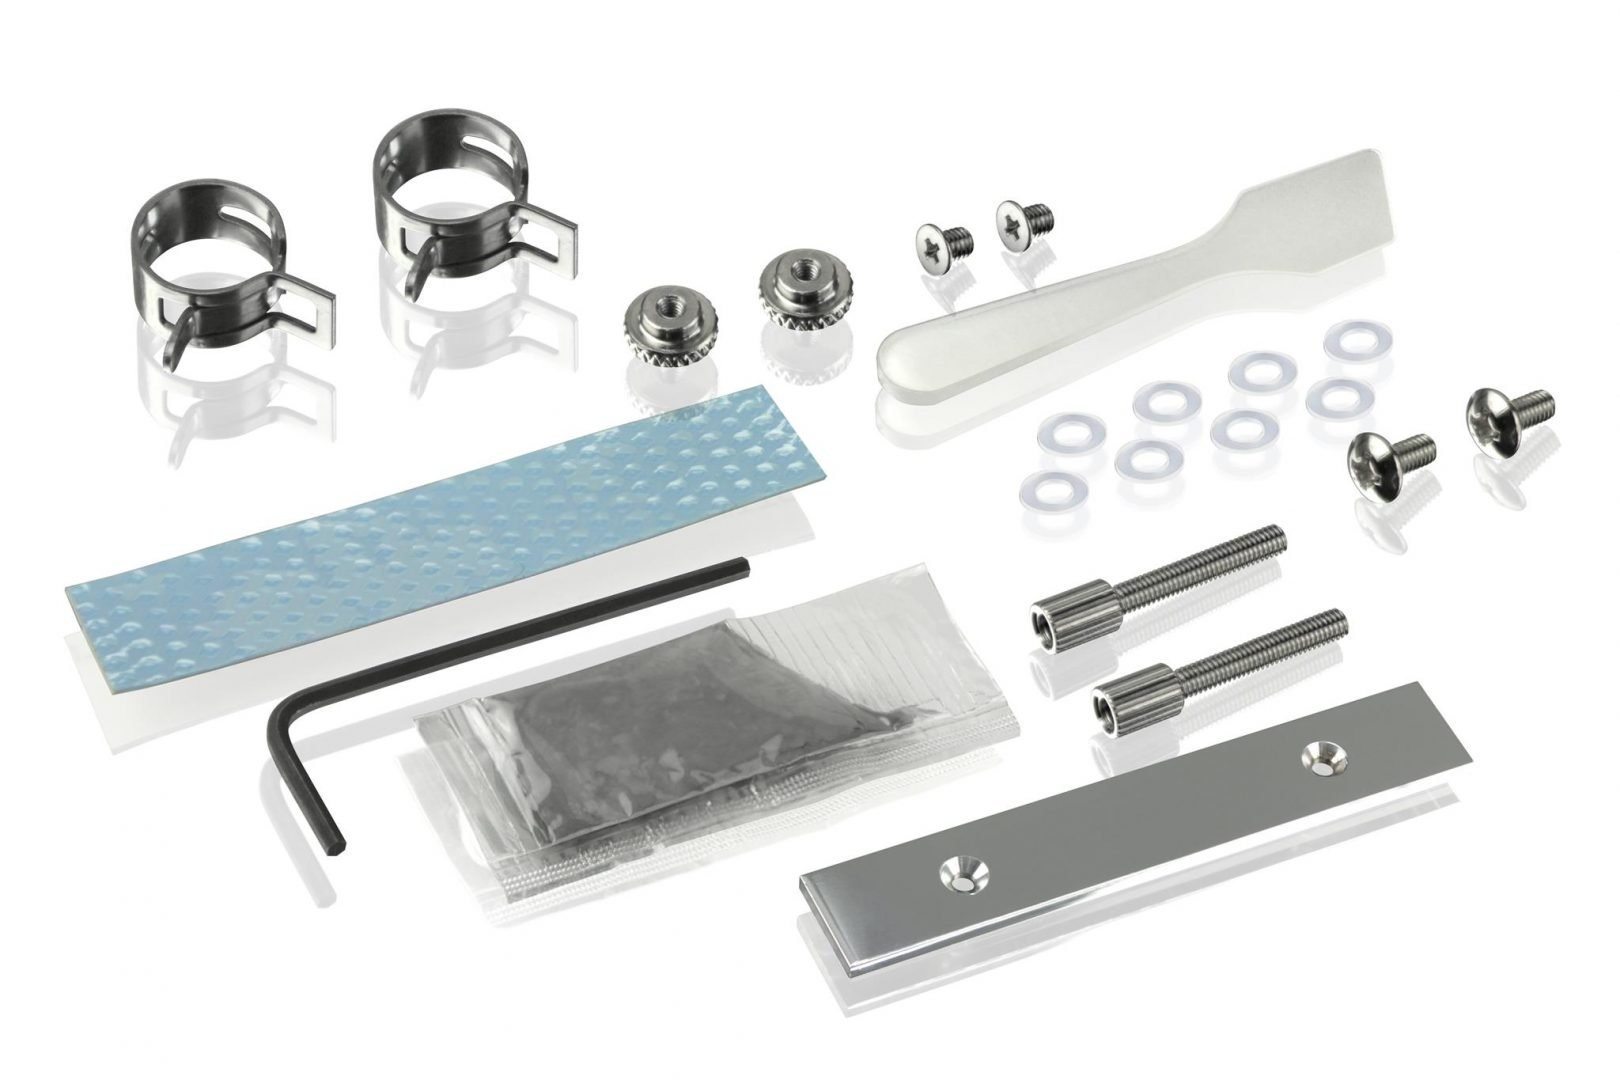 waterblock-vrm-accessories